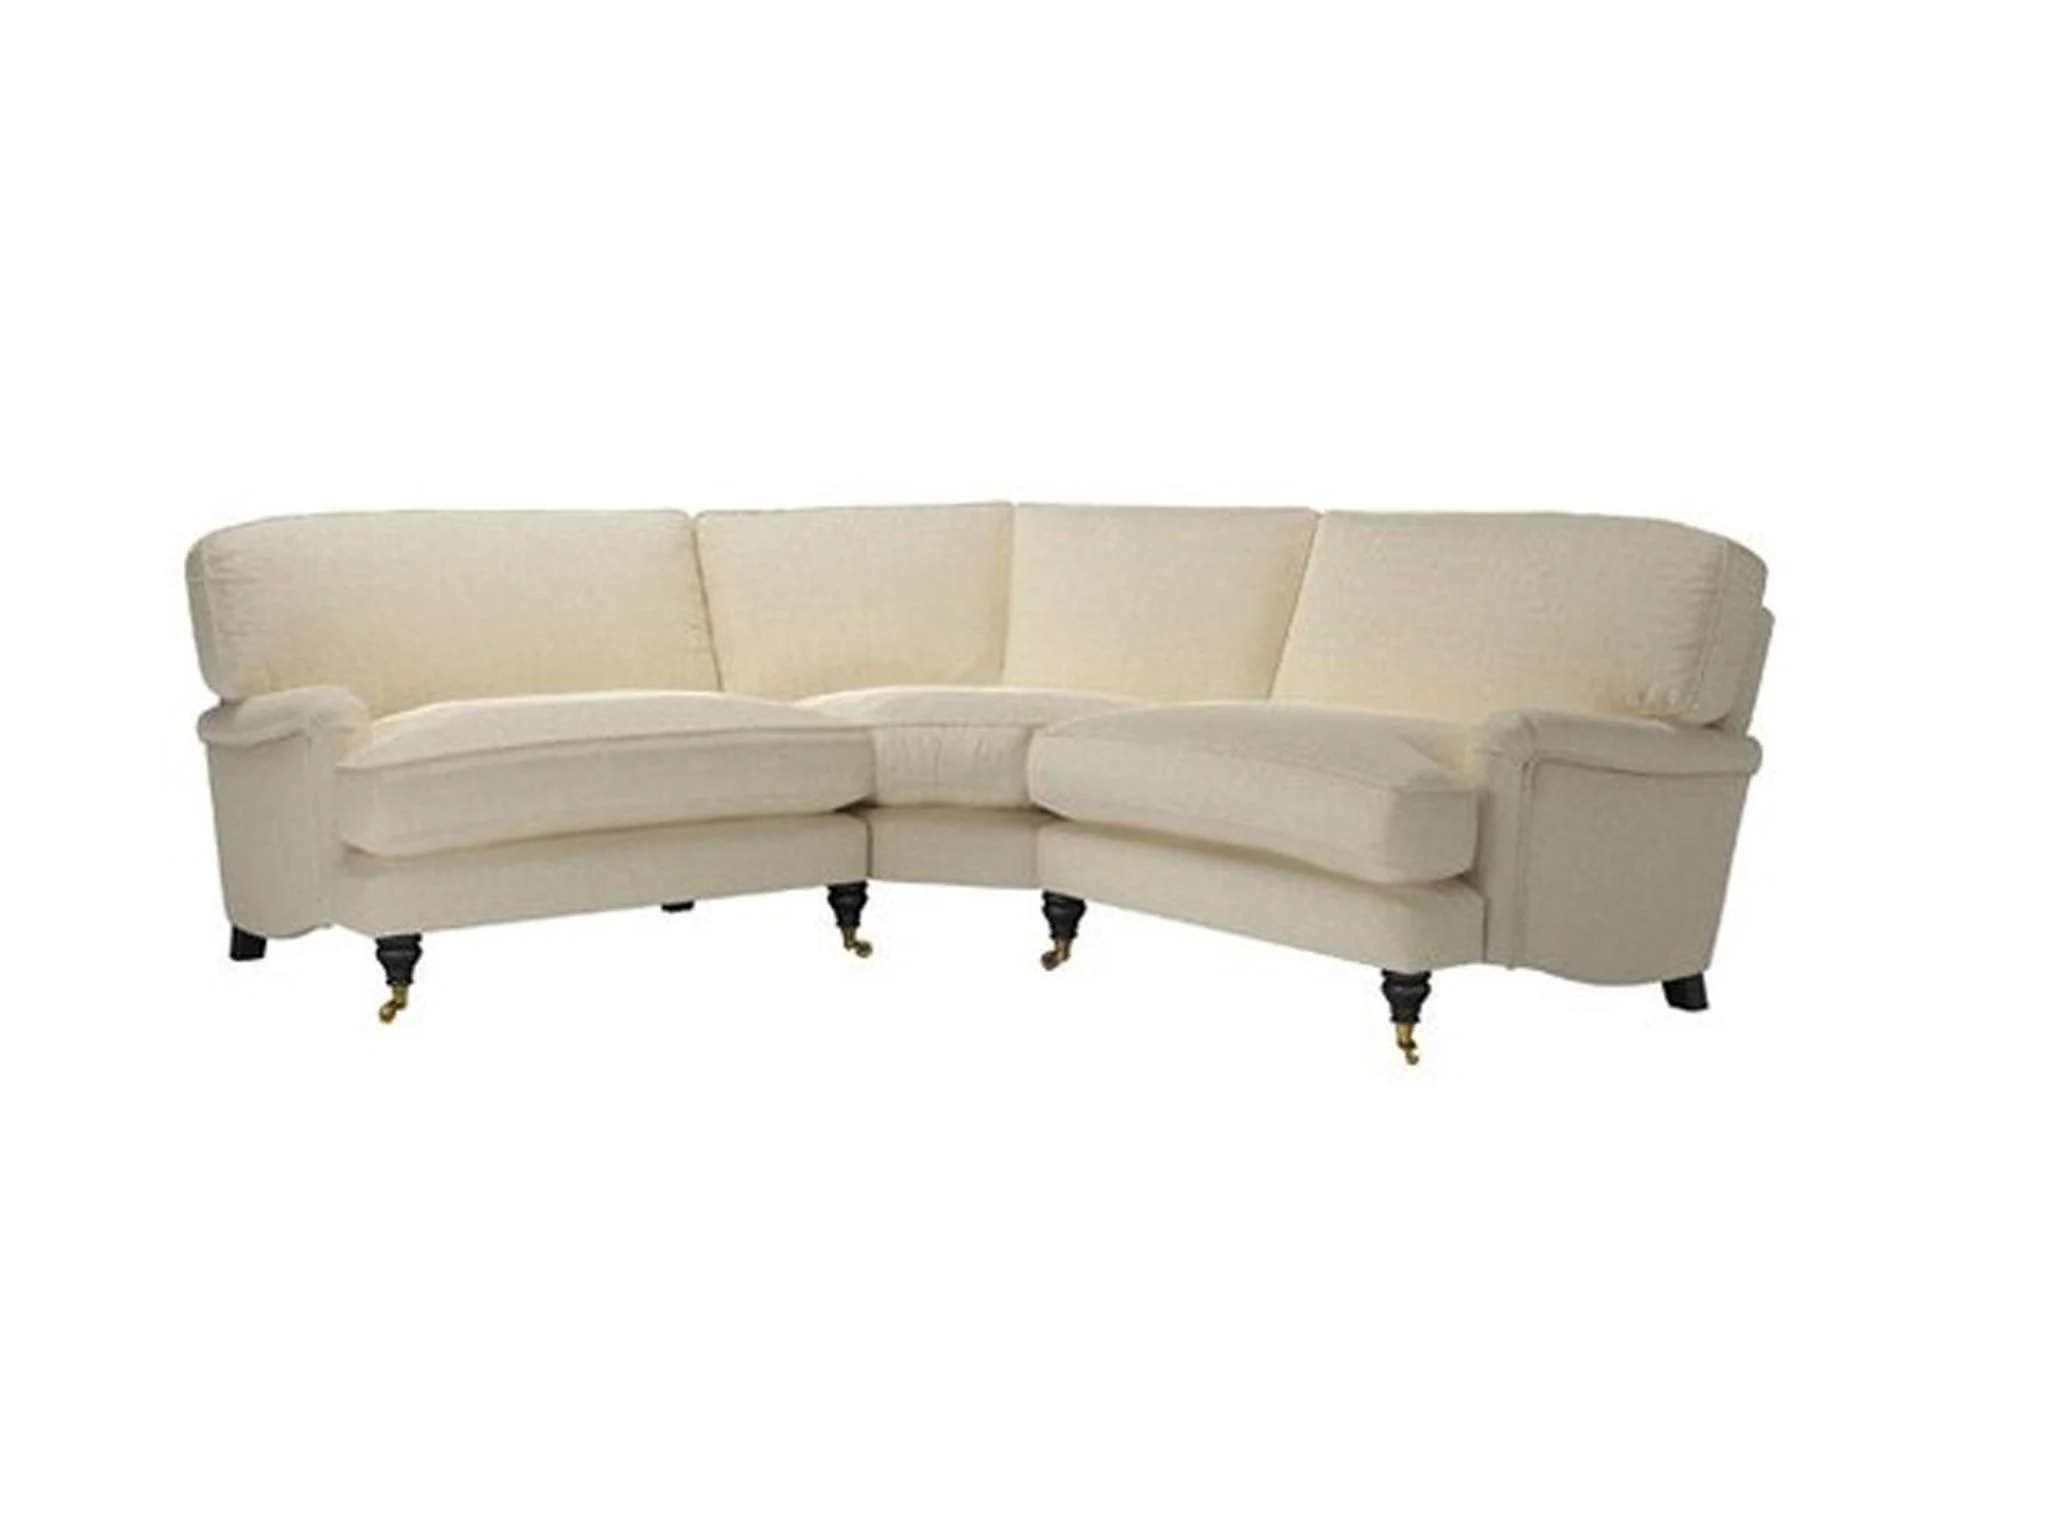 large square corner sofa light pink leather 11 best sofas the independent usually suit modern angular shapes rather than traditional styles but bluebell is a good example of combination done elegantly